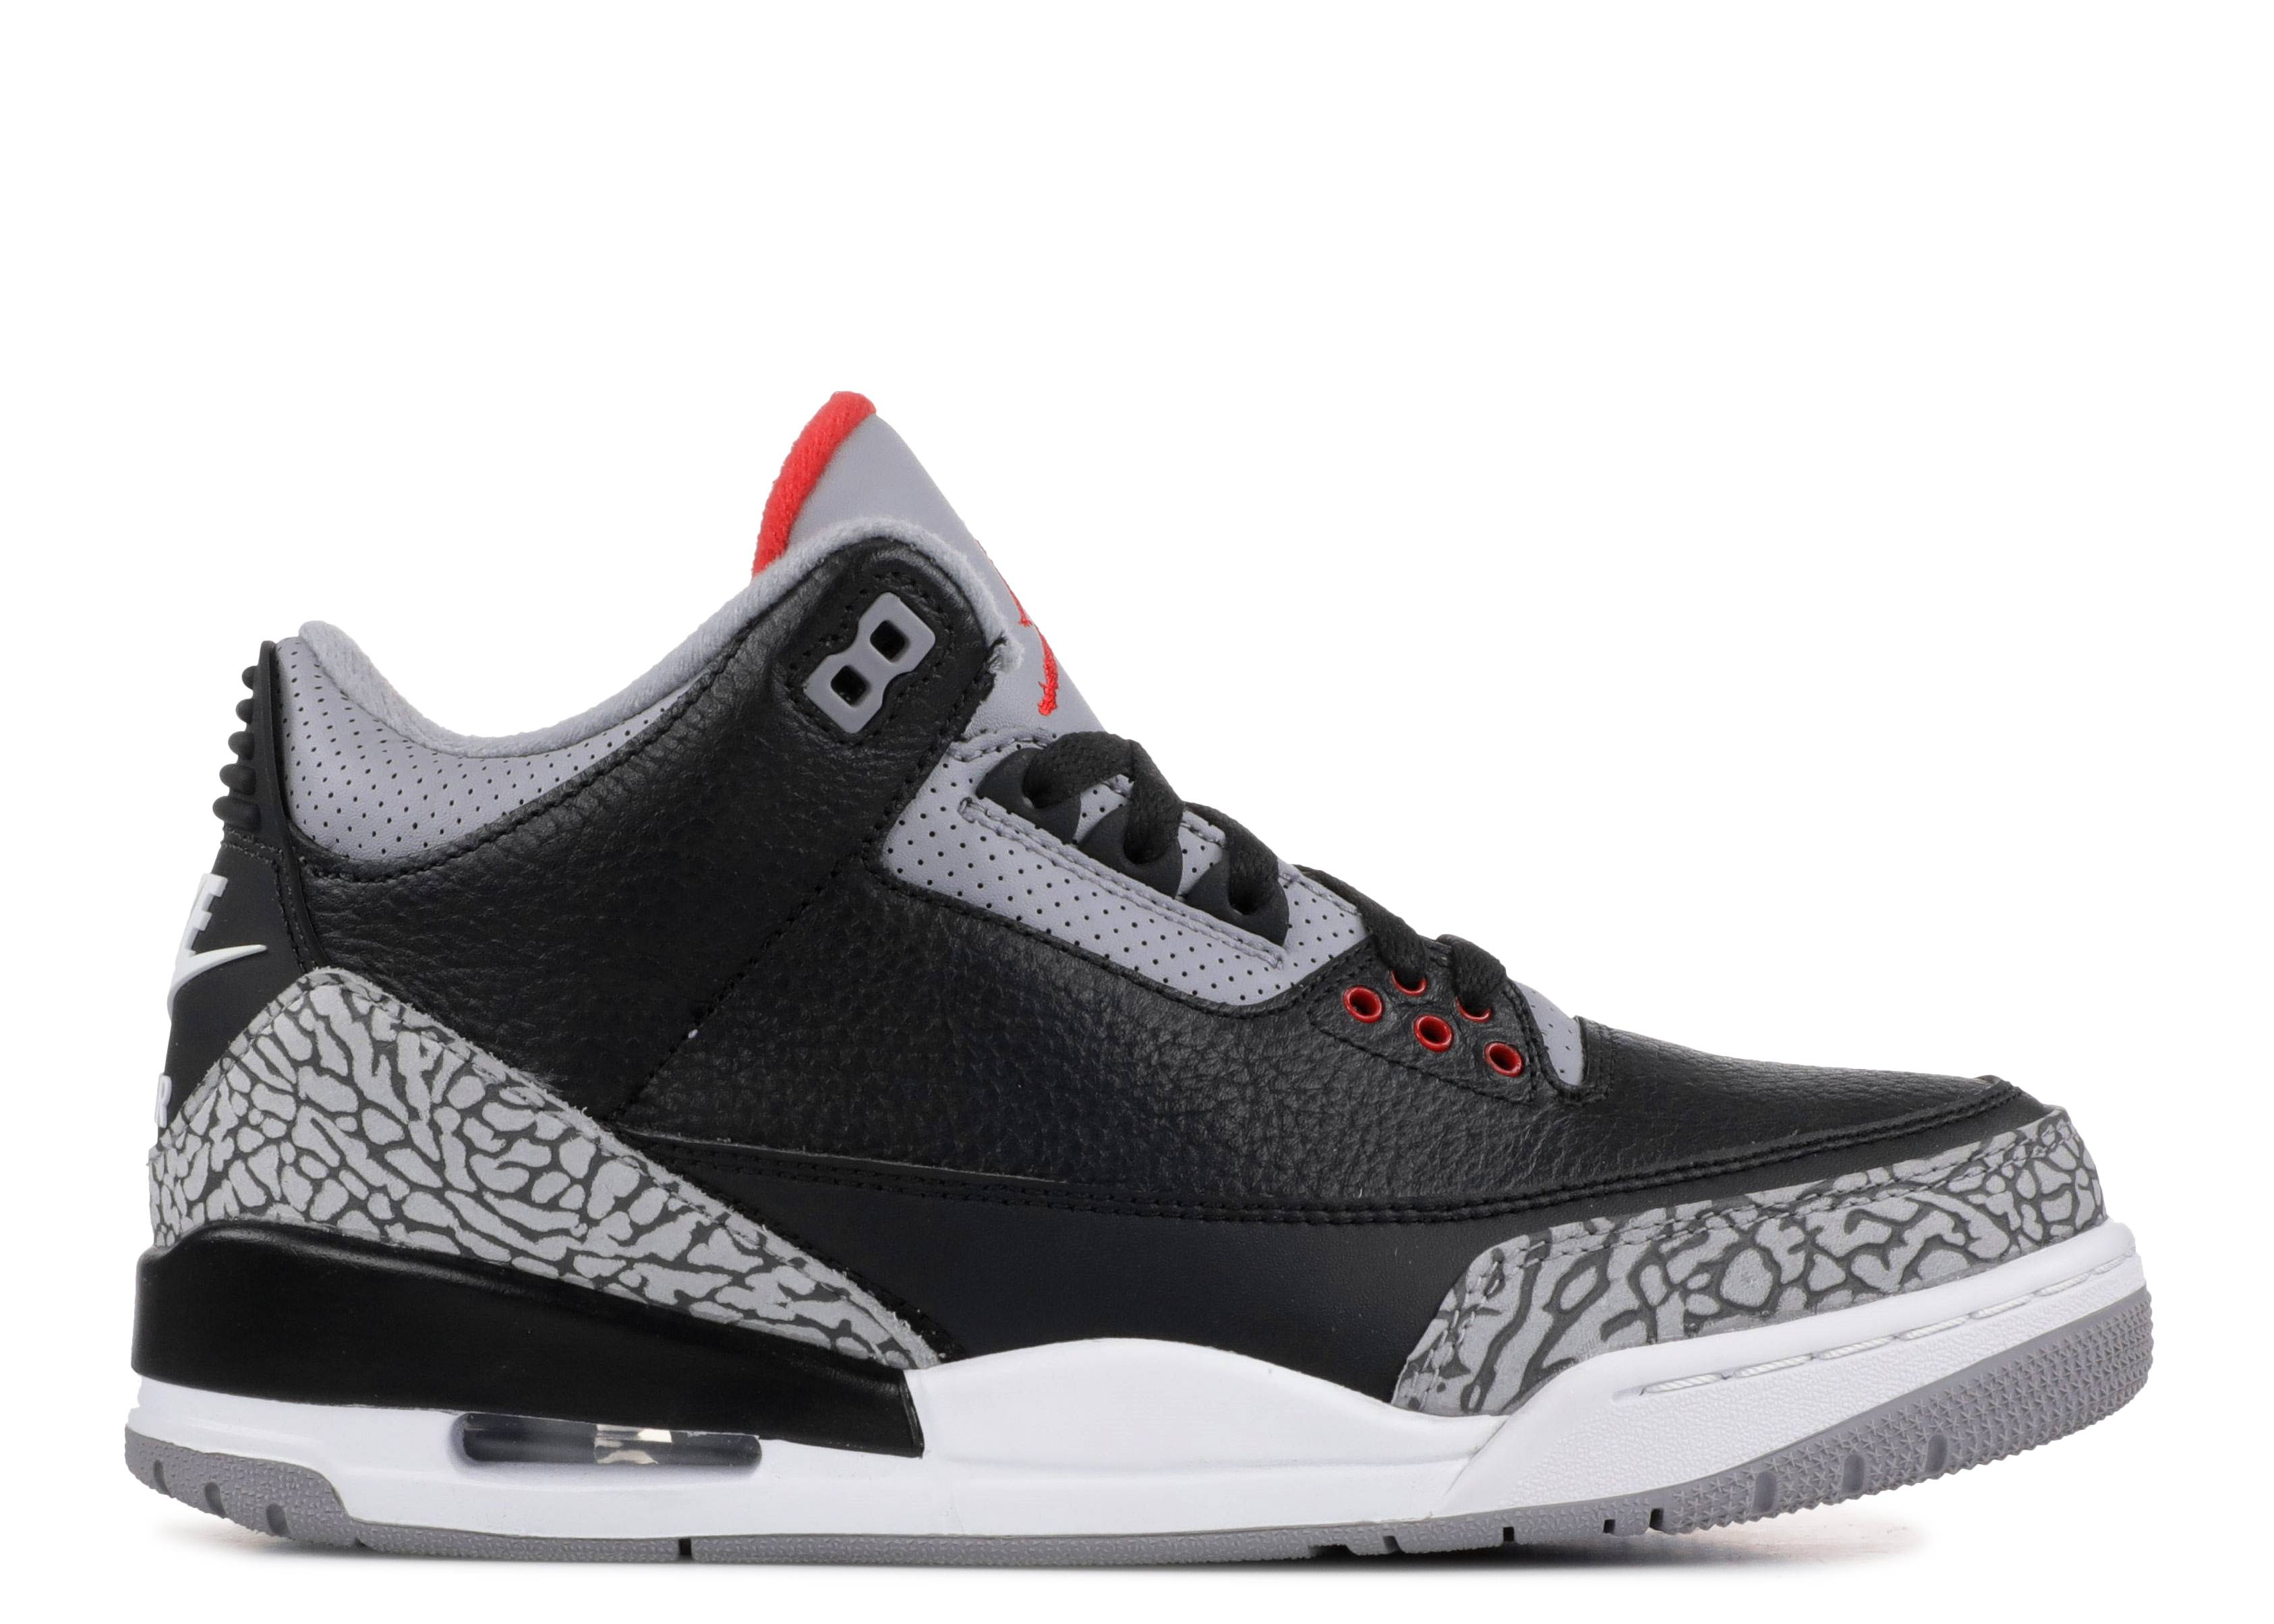 Air Jordan 3 Retro Og  black Cement    Air Jordan   854262 001     air jordan 3 retro og  black cement